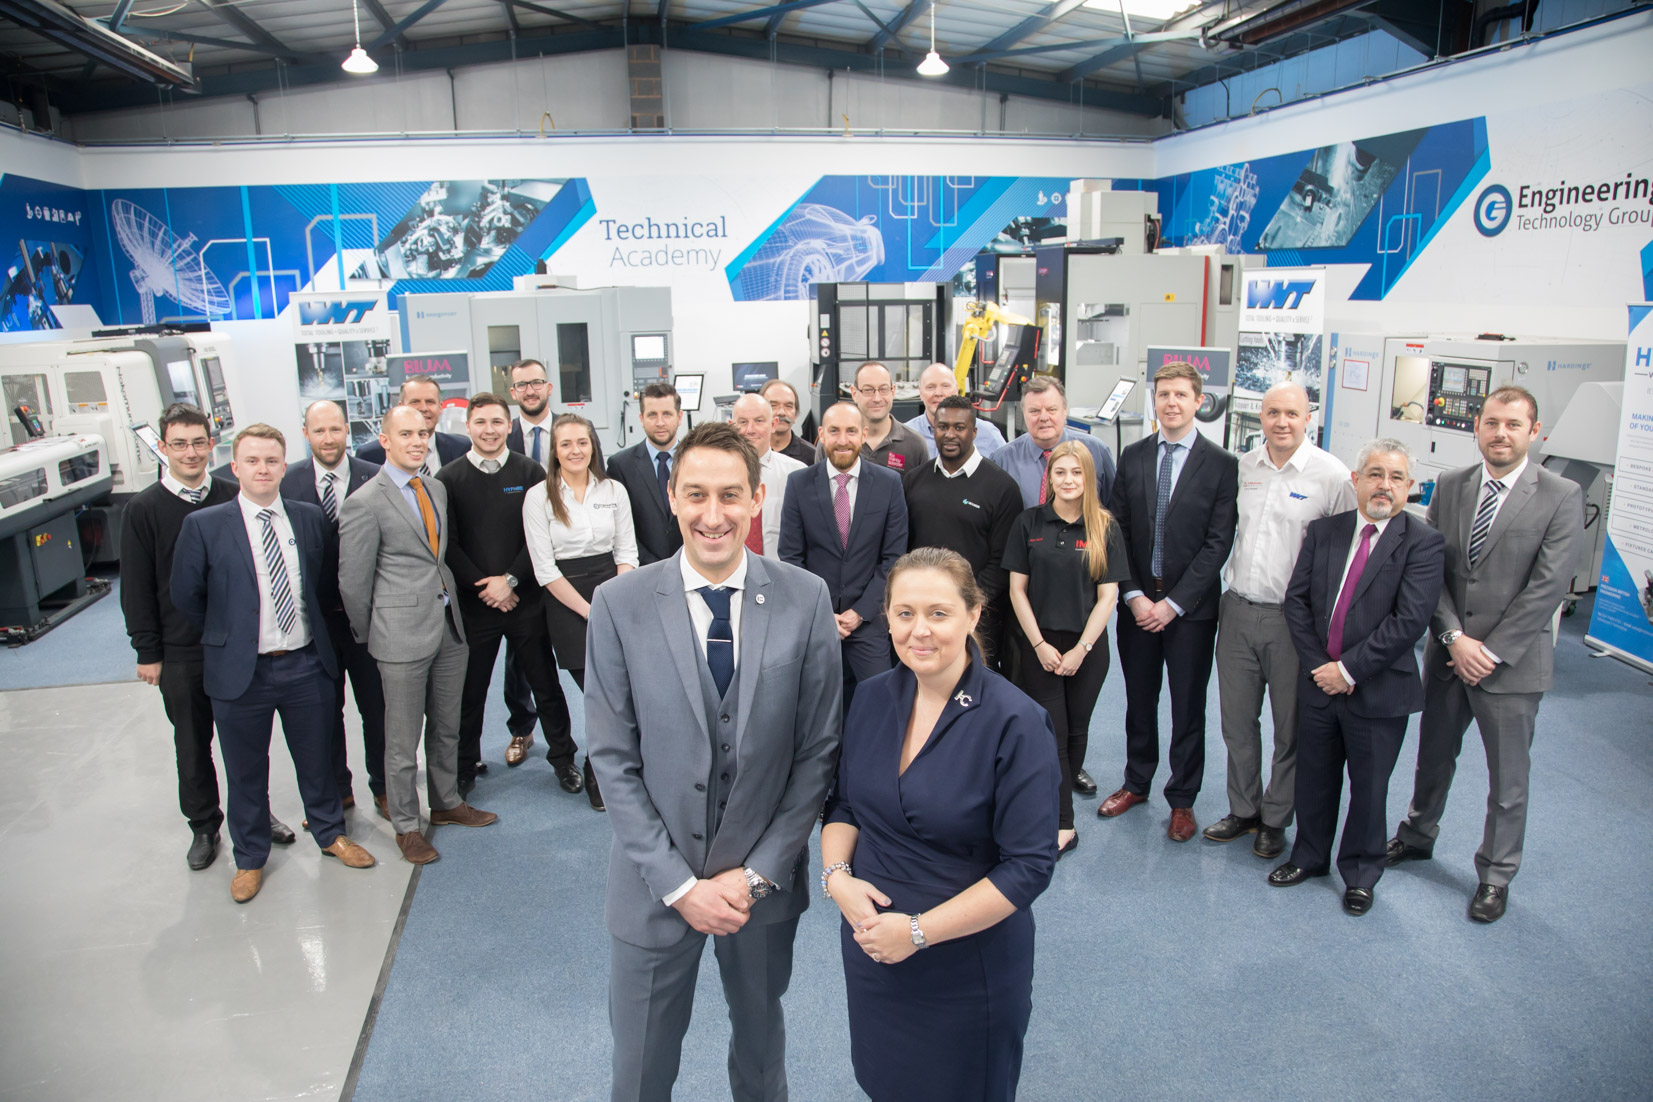 Technical partners behind the £3m Technical Academy in the West Midlands